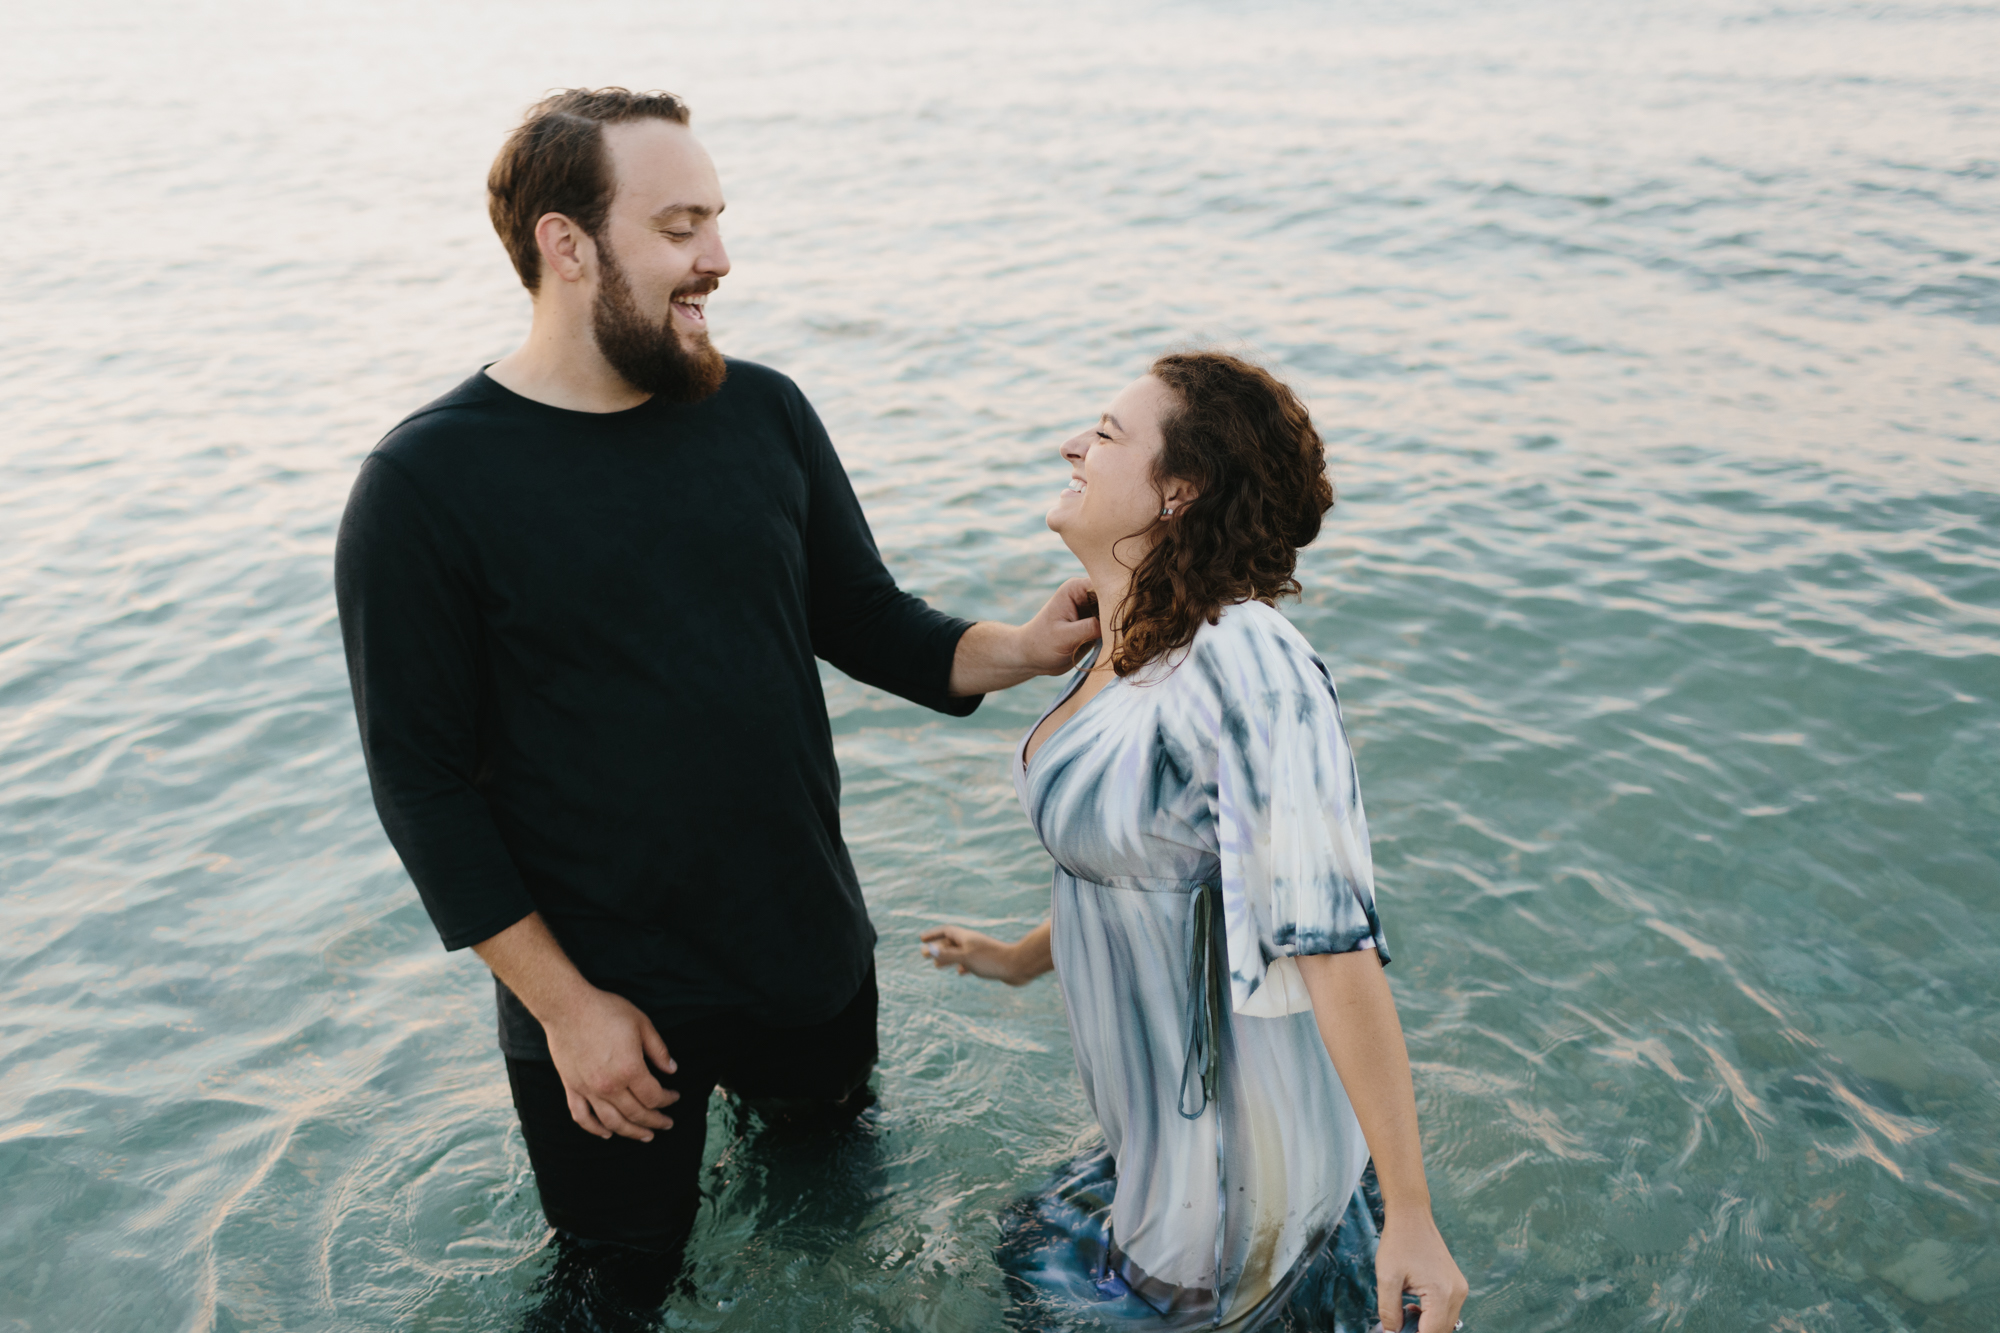 Northern Michigan Sleeping Bear Dunes Wedding Engagement Photographer Mae Stier-041.jpg